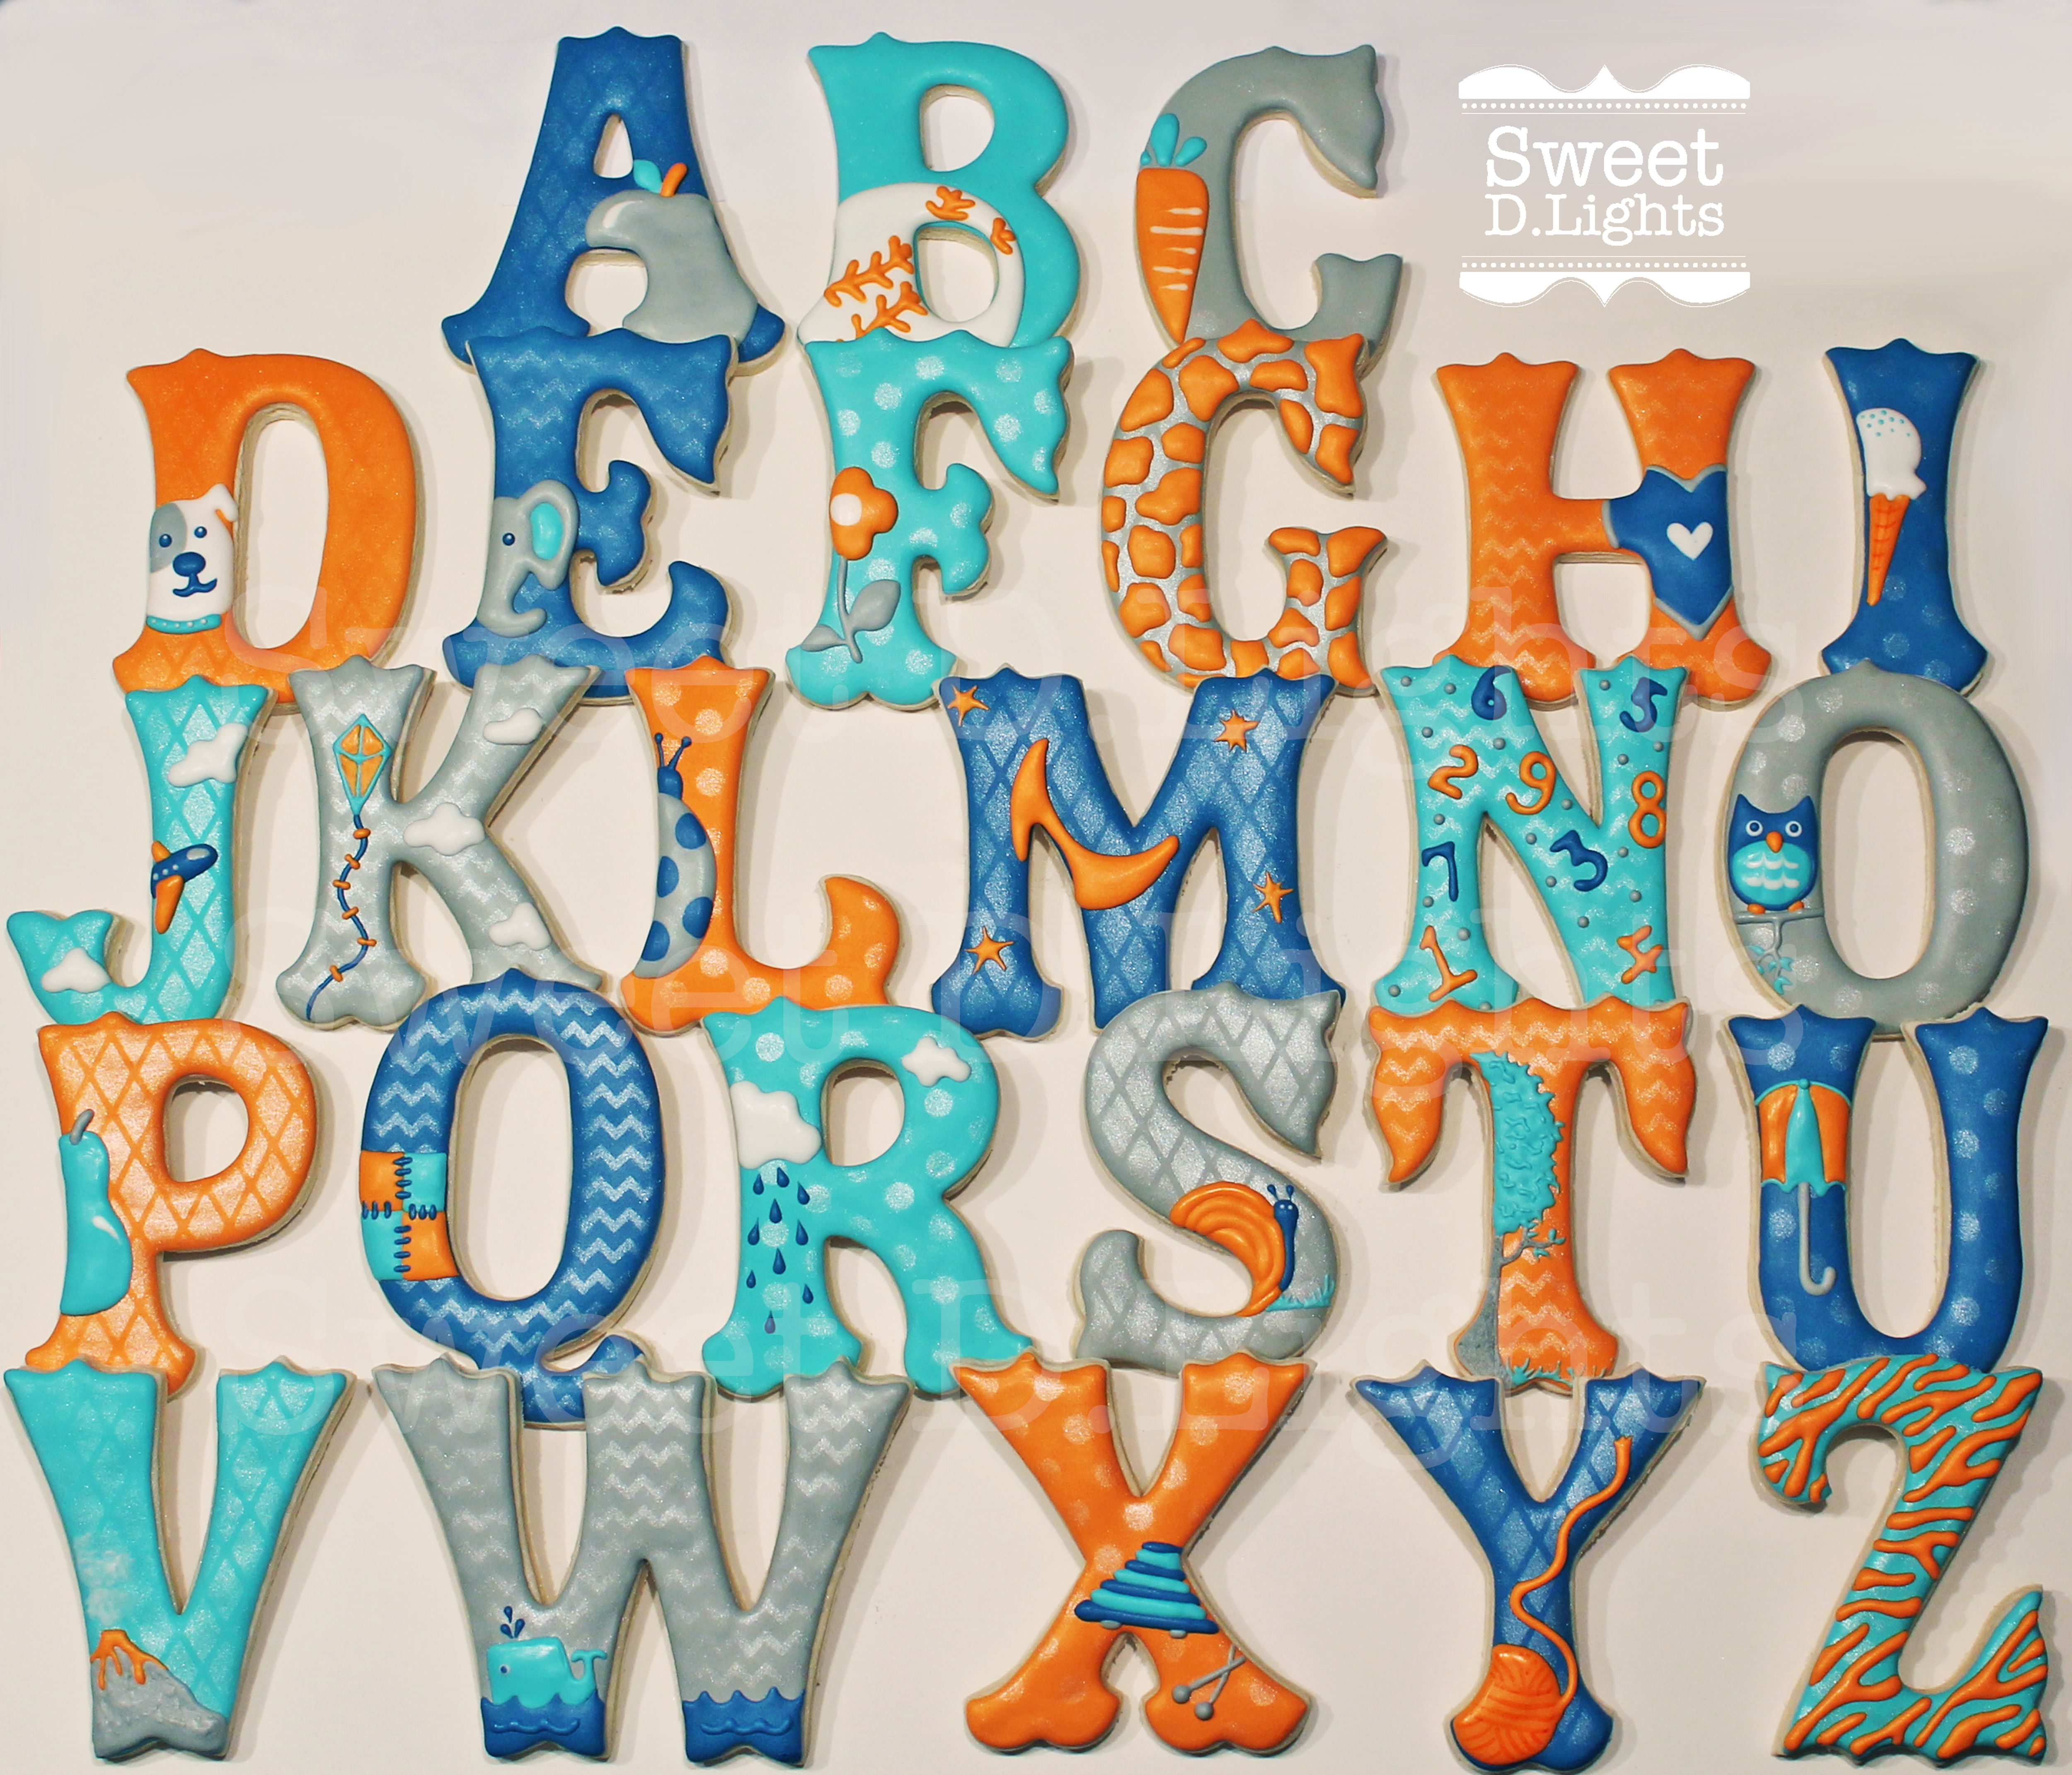 Alphabet gluten free sugar cookies for a little boys birthday party alphabet gluten free sugar cookies for a little boys birthday party each letter has an image of an object that starts with that letter example the altavistaventures Image collections